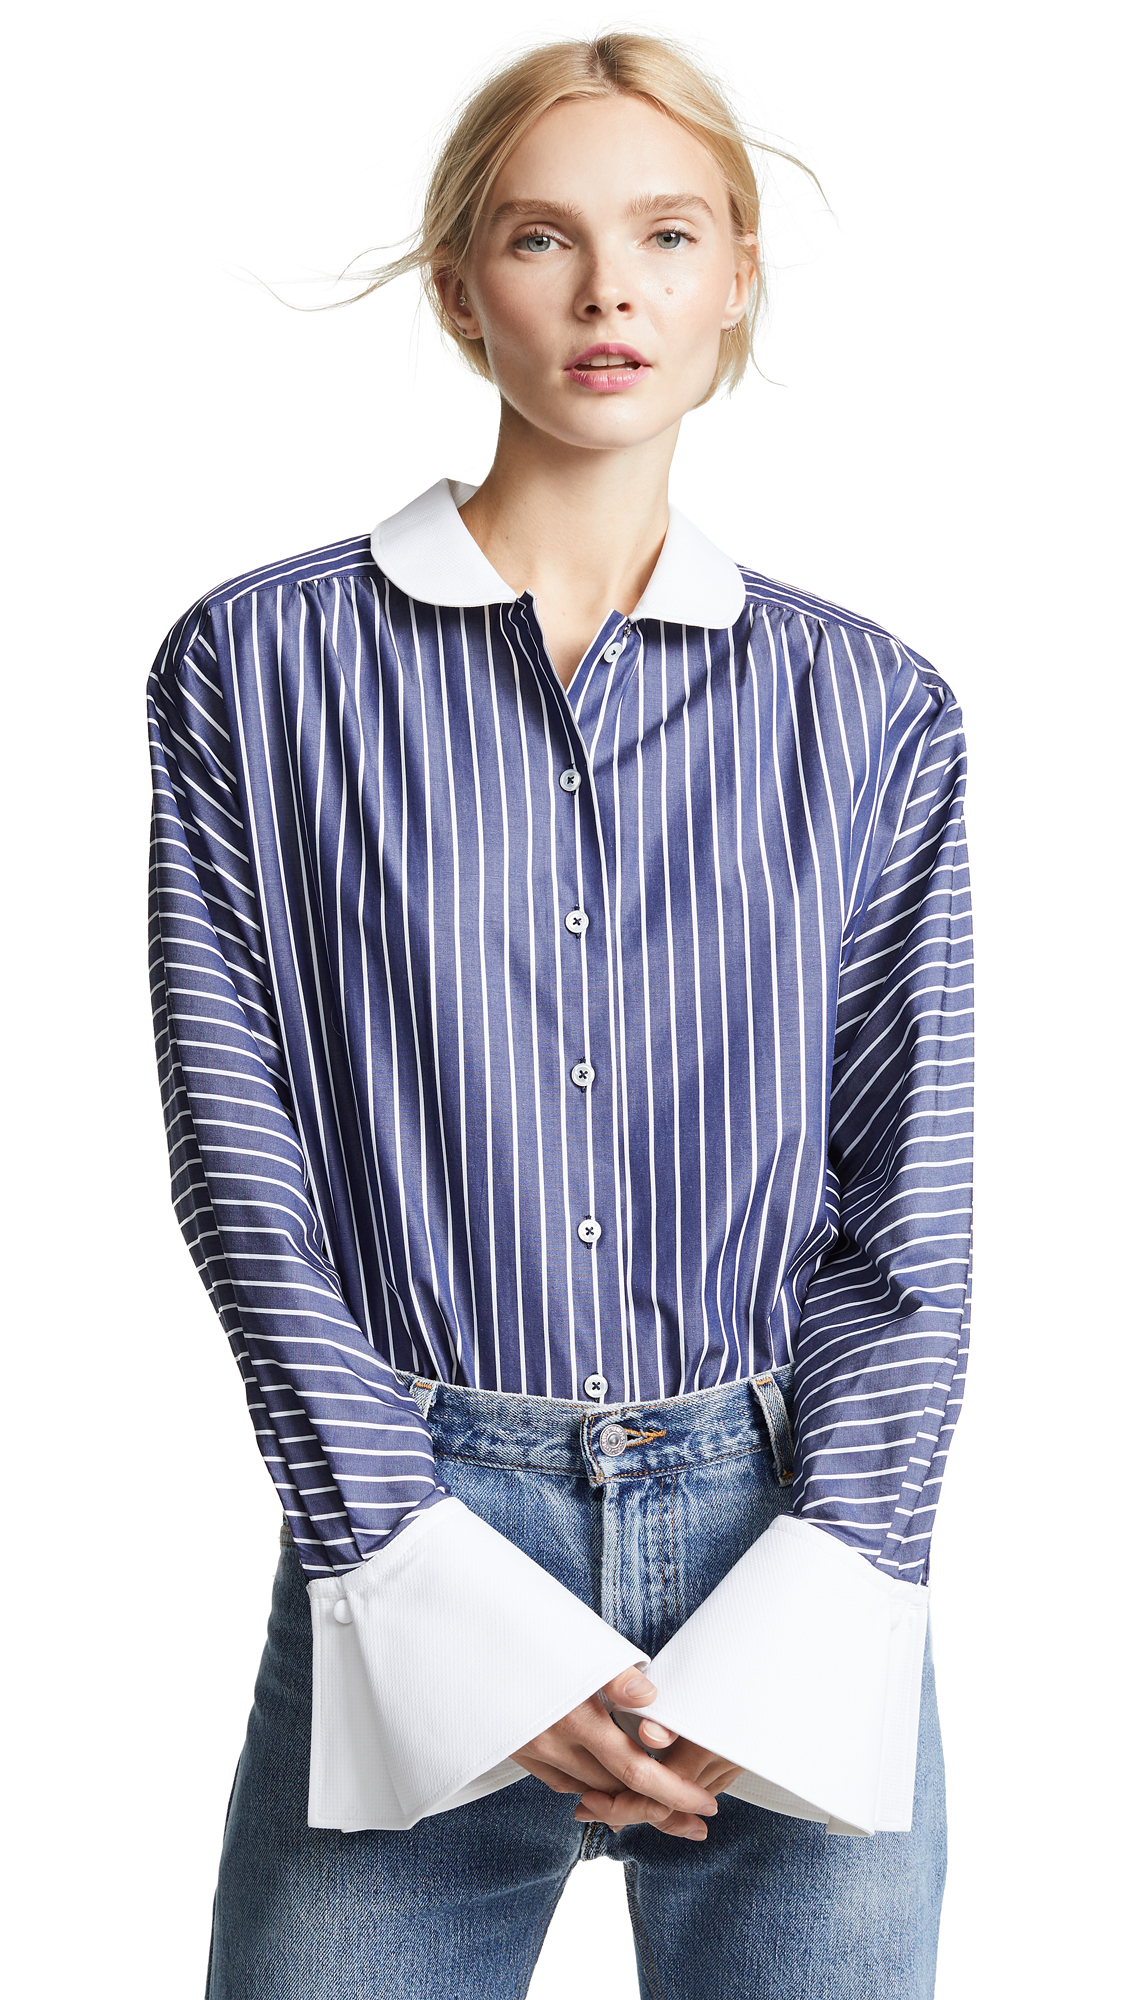 Marc Jacobs Stripe Button Down with Cuffs In Navy/White